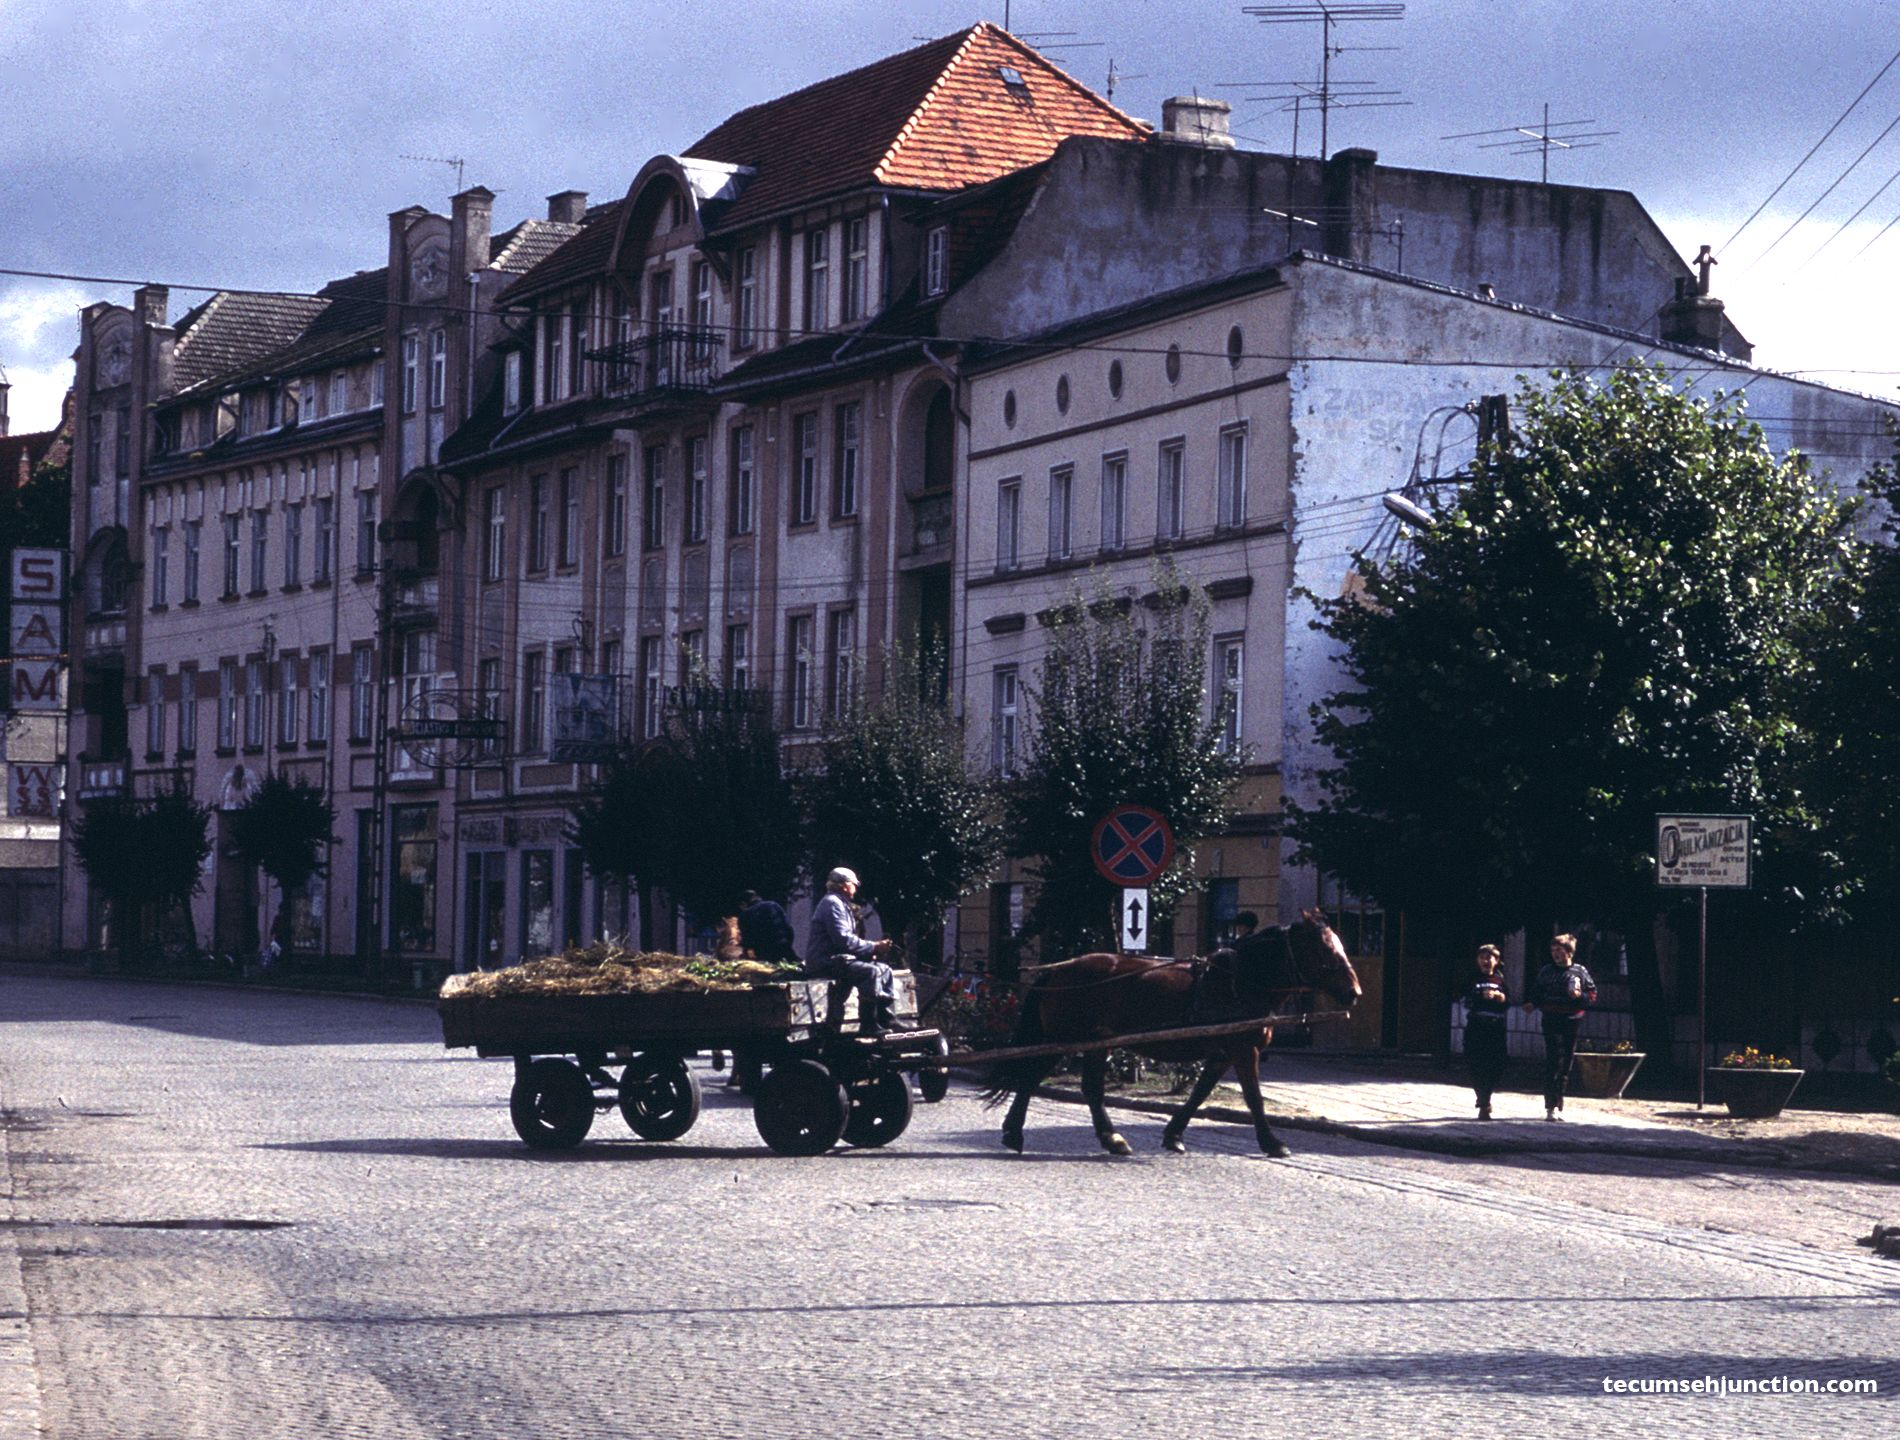 A horse-drawn cart turns off the main street in Czersk, Poland